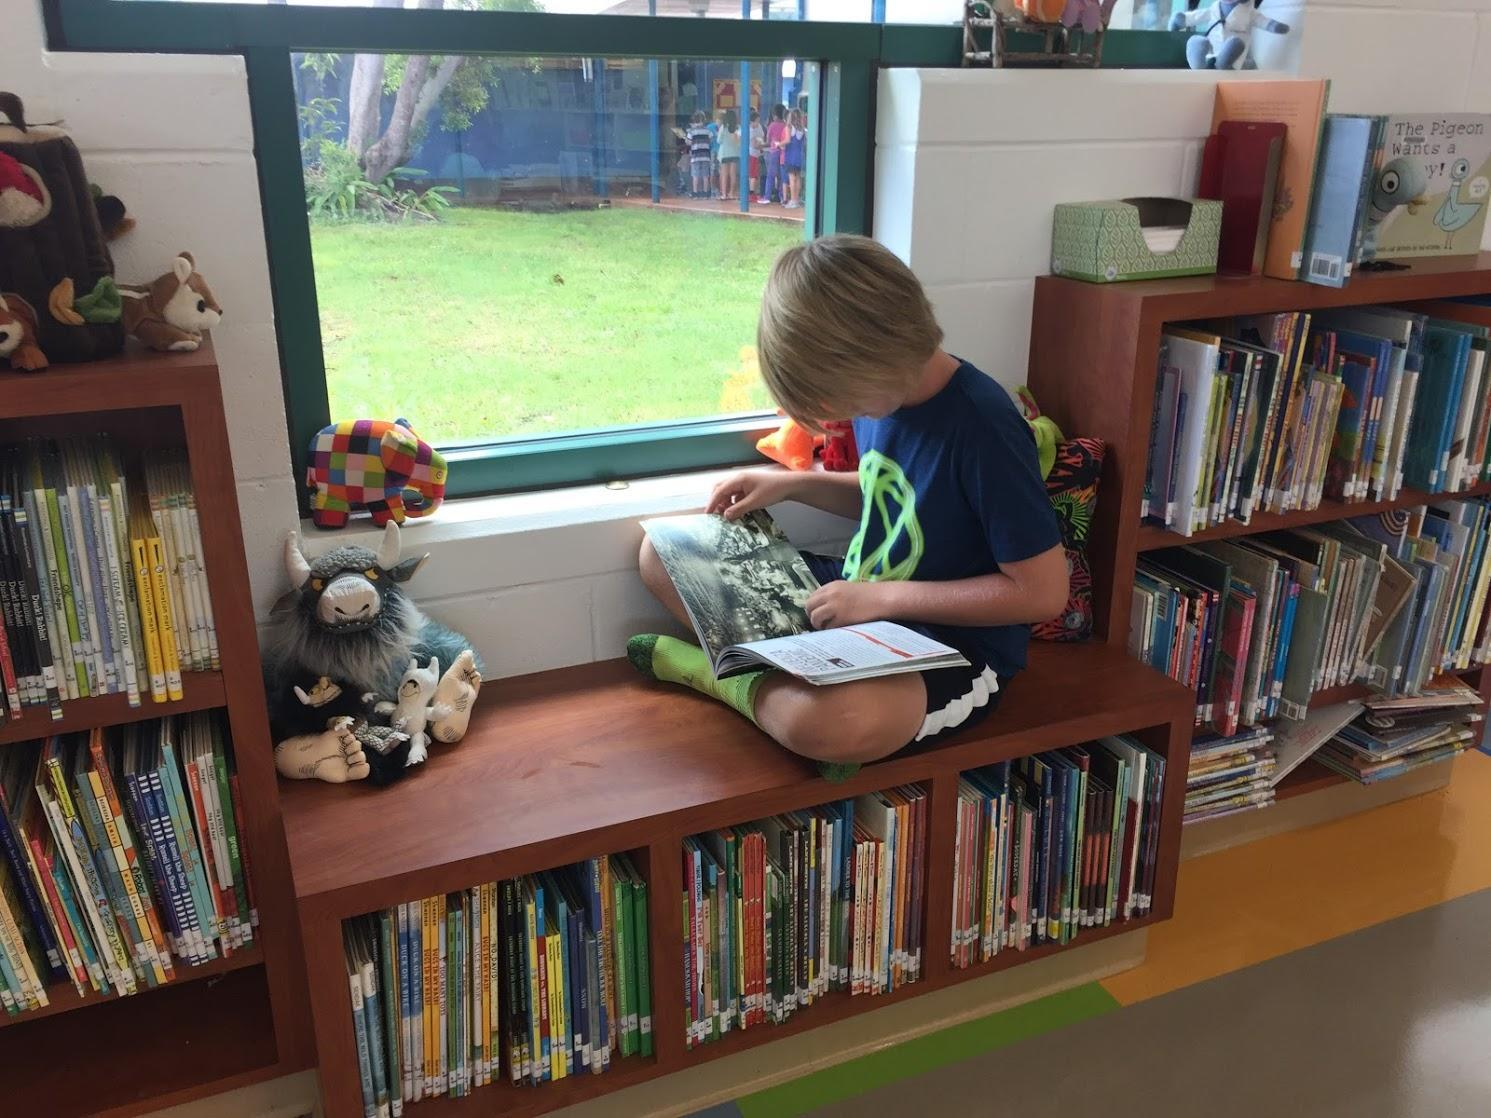 Student reading in window